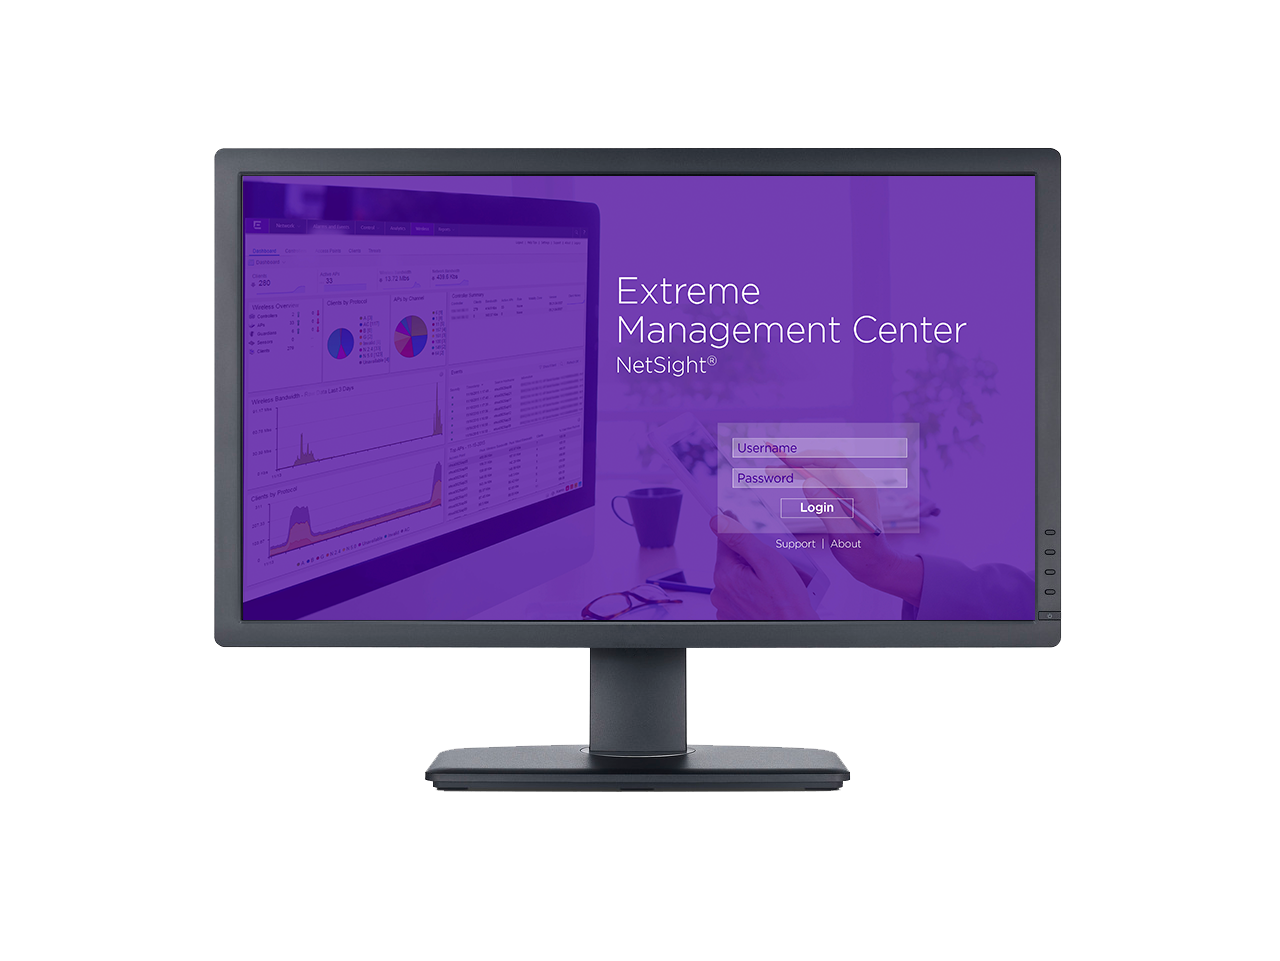 Extreme Networks Management Center